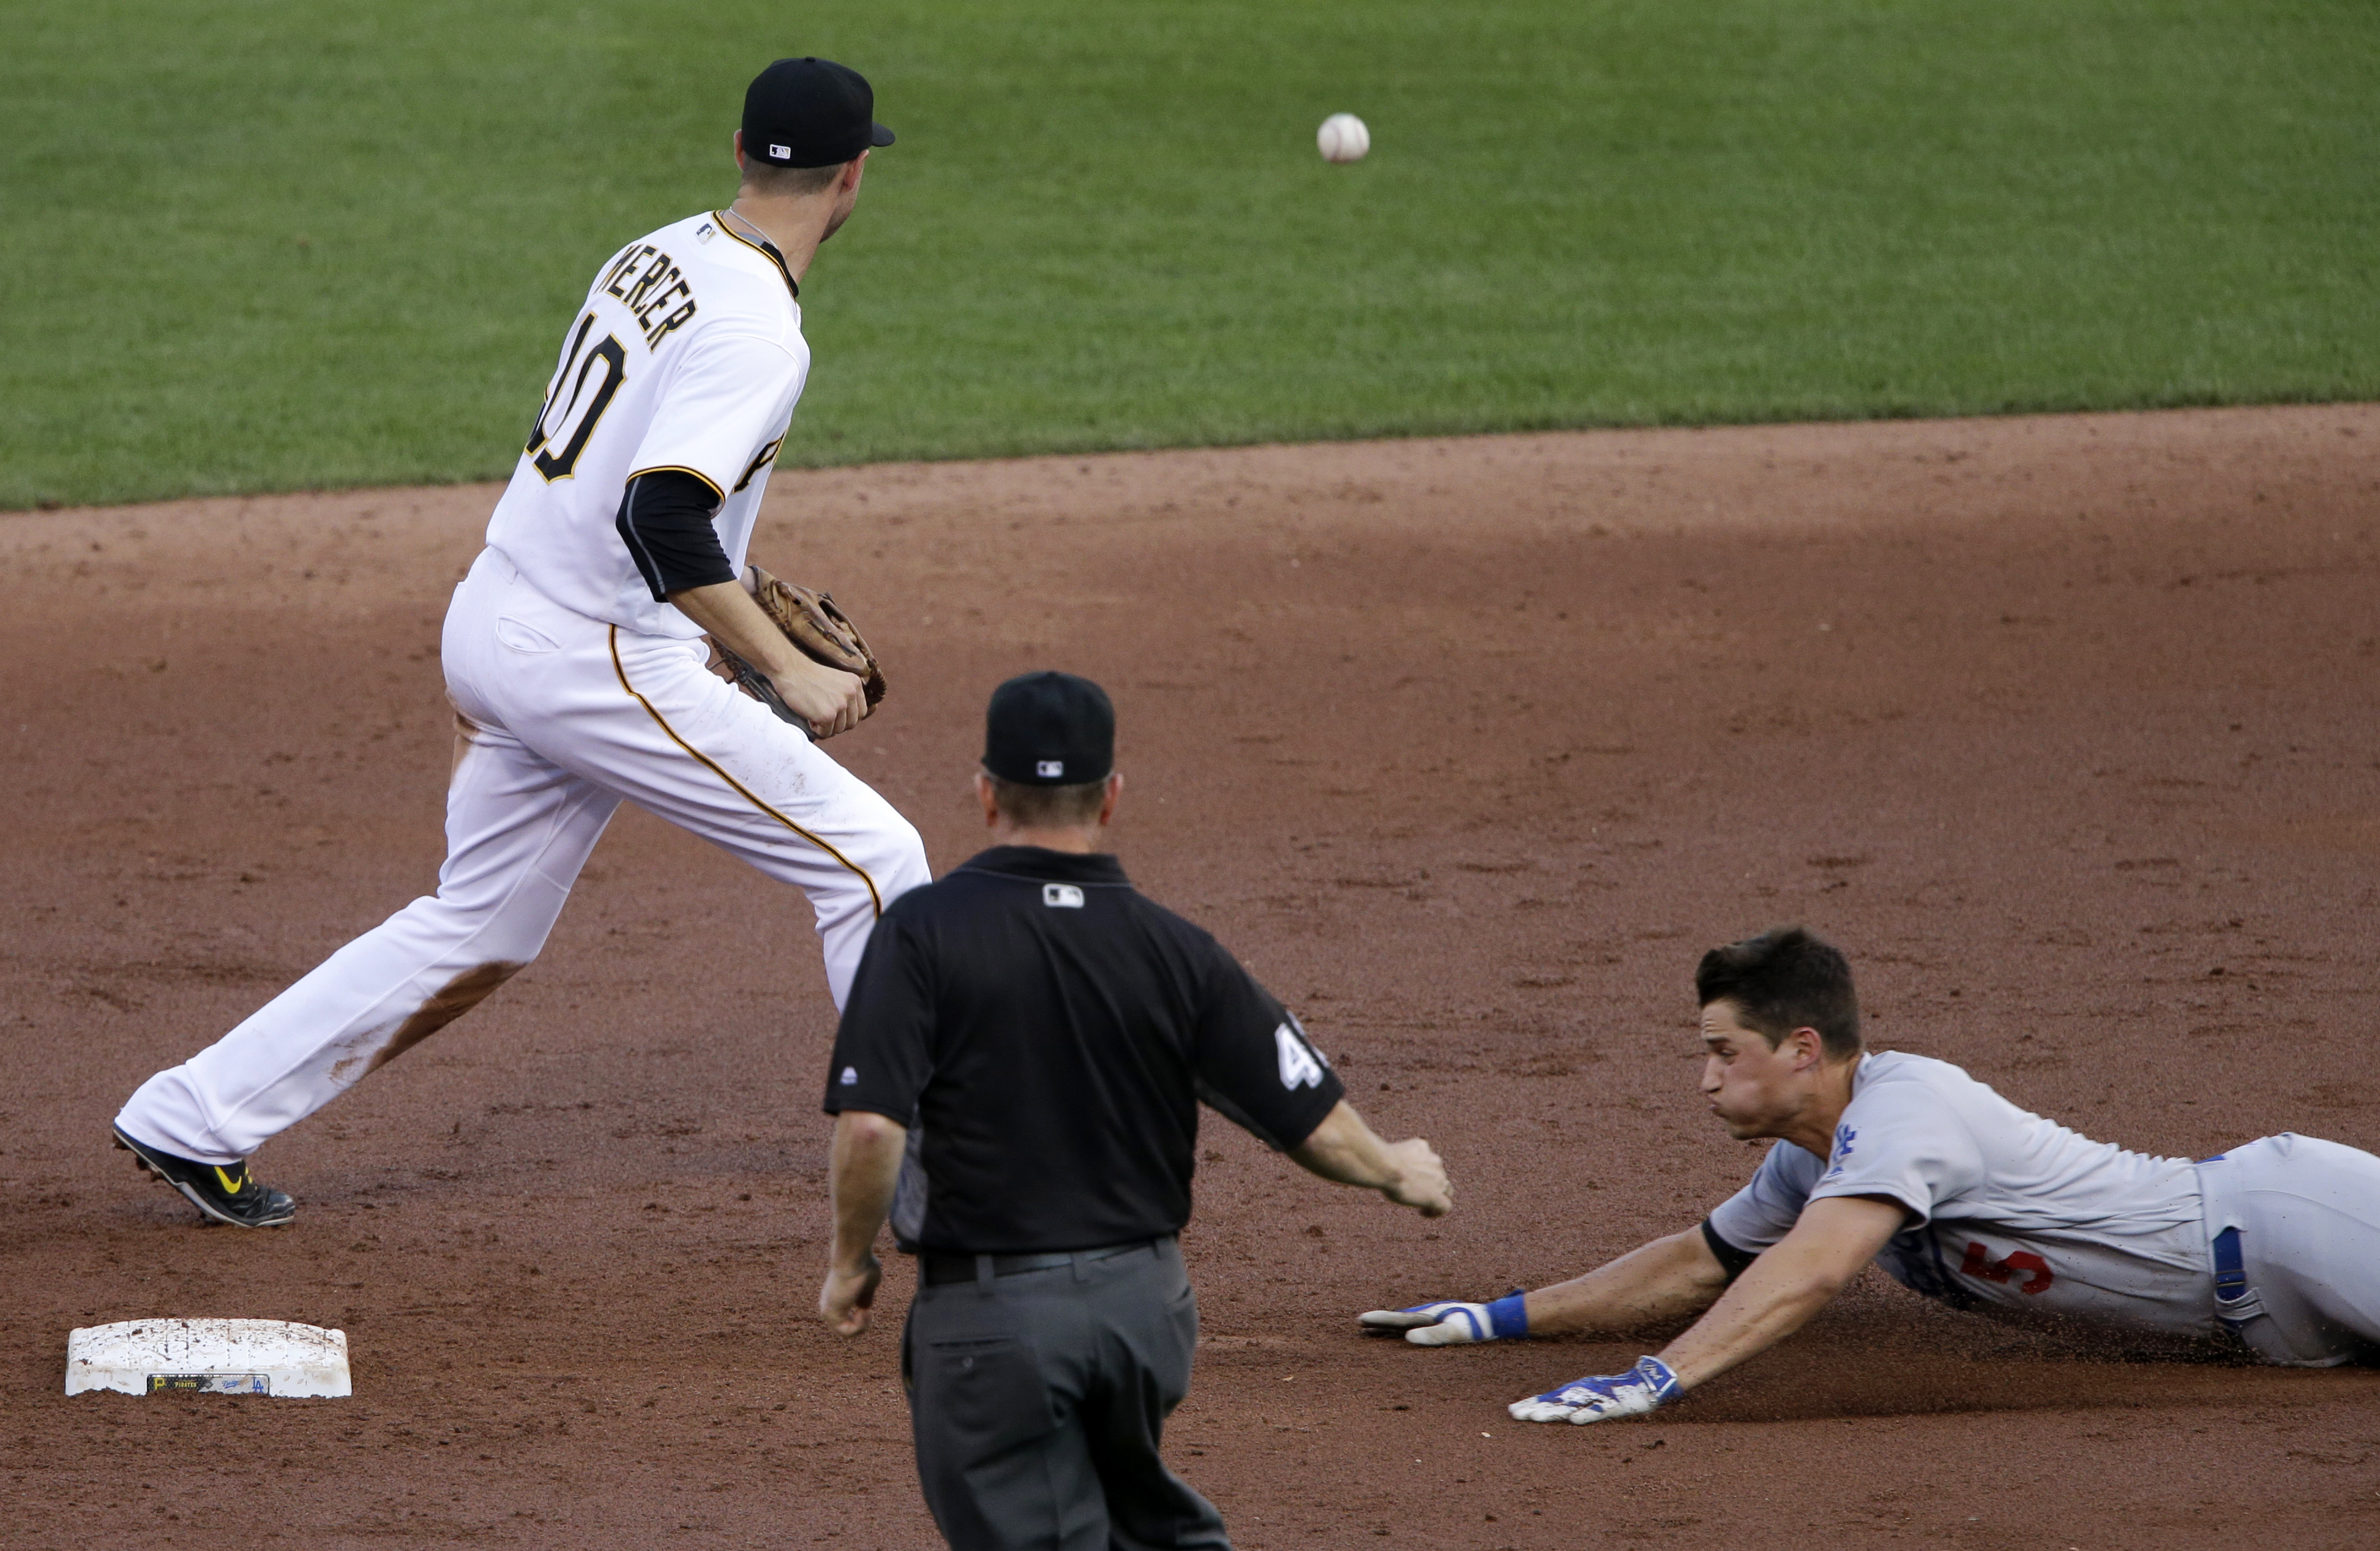 Los Angeles Dodgers' Corey Seager, right, slides into second with a double as Pittsburgh Pirates shortstop Jordy Mercer (10) waits for the throw during the third inning of a baseball game in Pittsburgh, Friday, June 24, 2016. (AP Photo/Gene J. Puskar)